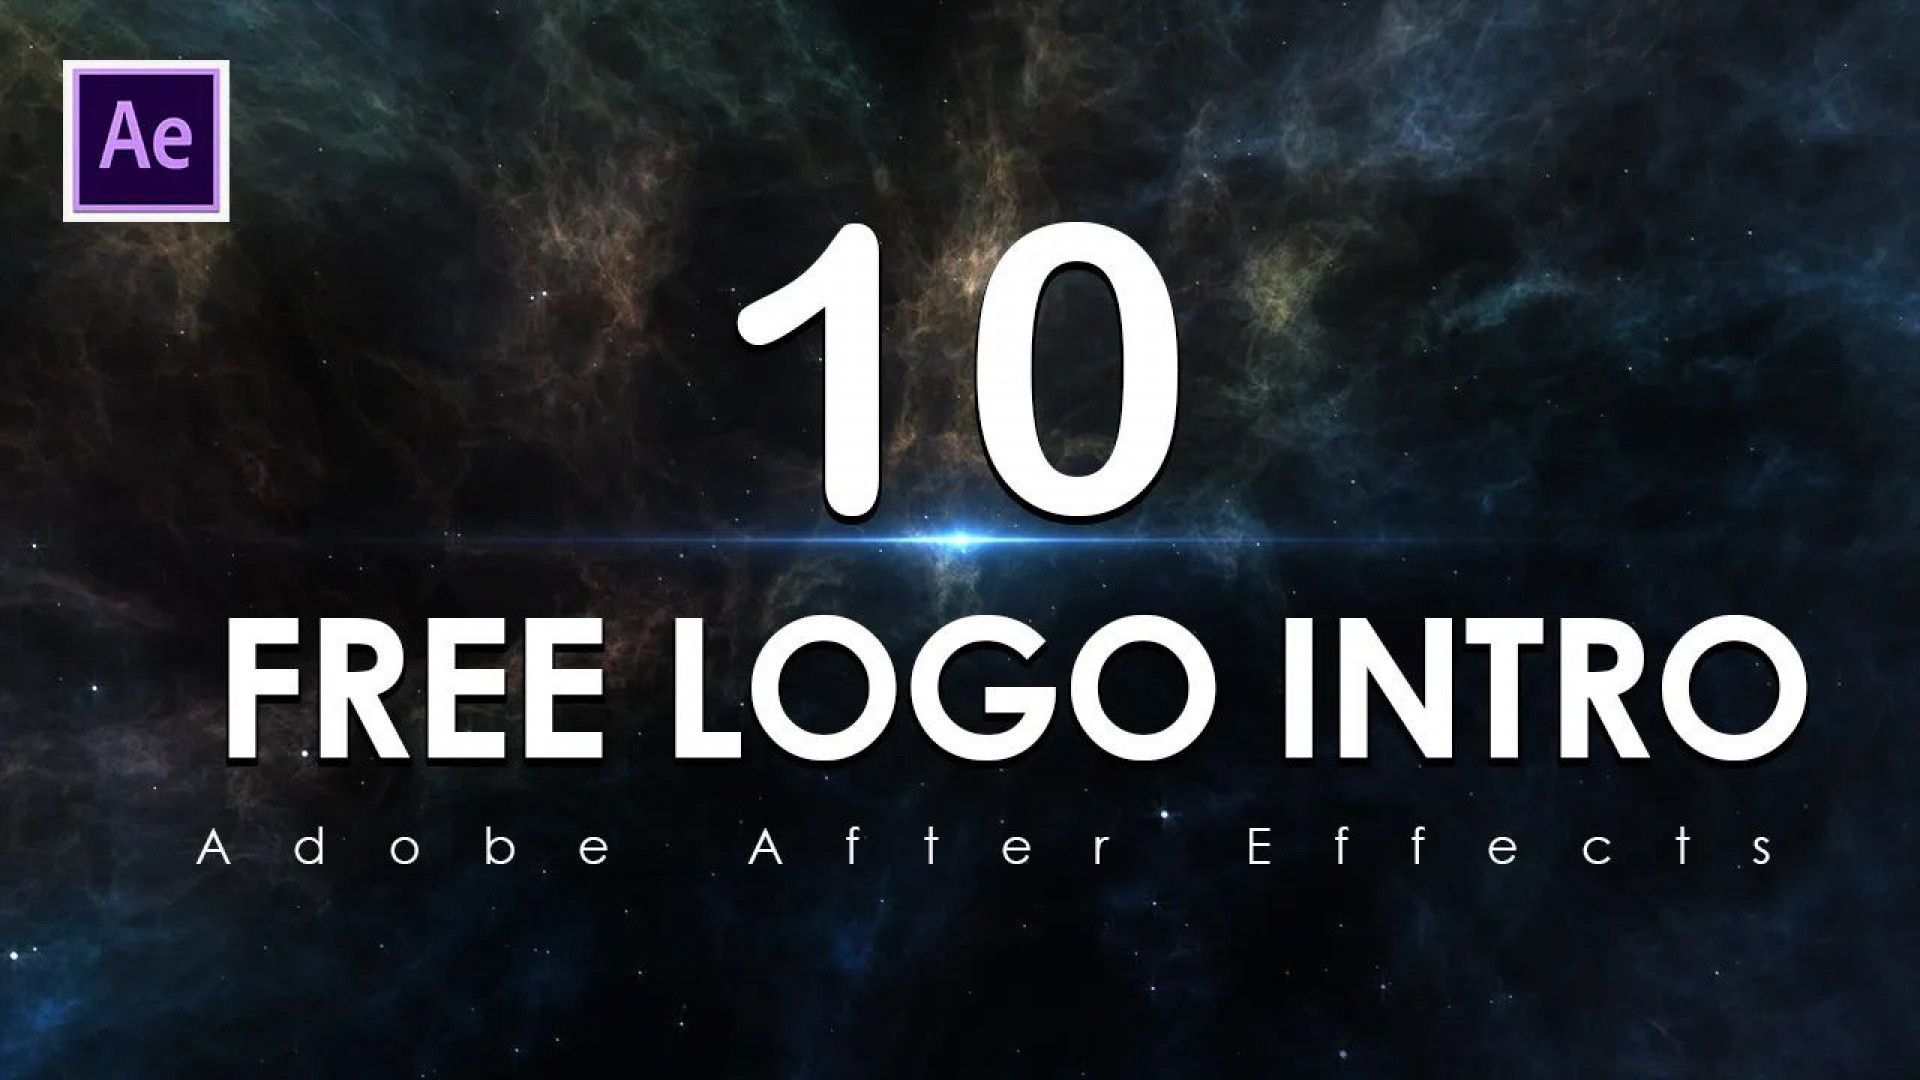 009 Unusual After Effect Logo Template High Resolution  Templates Intro Free Download Zip Adobe1920